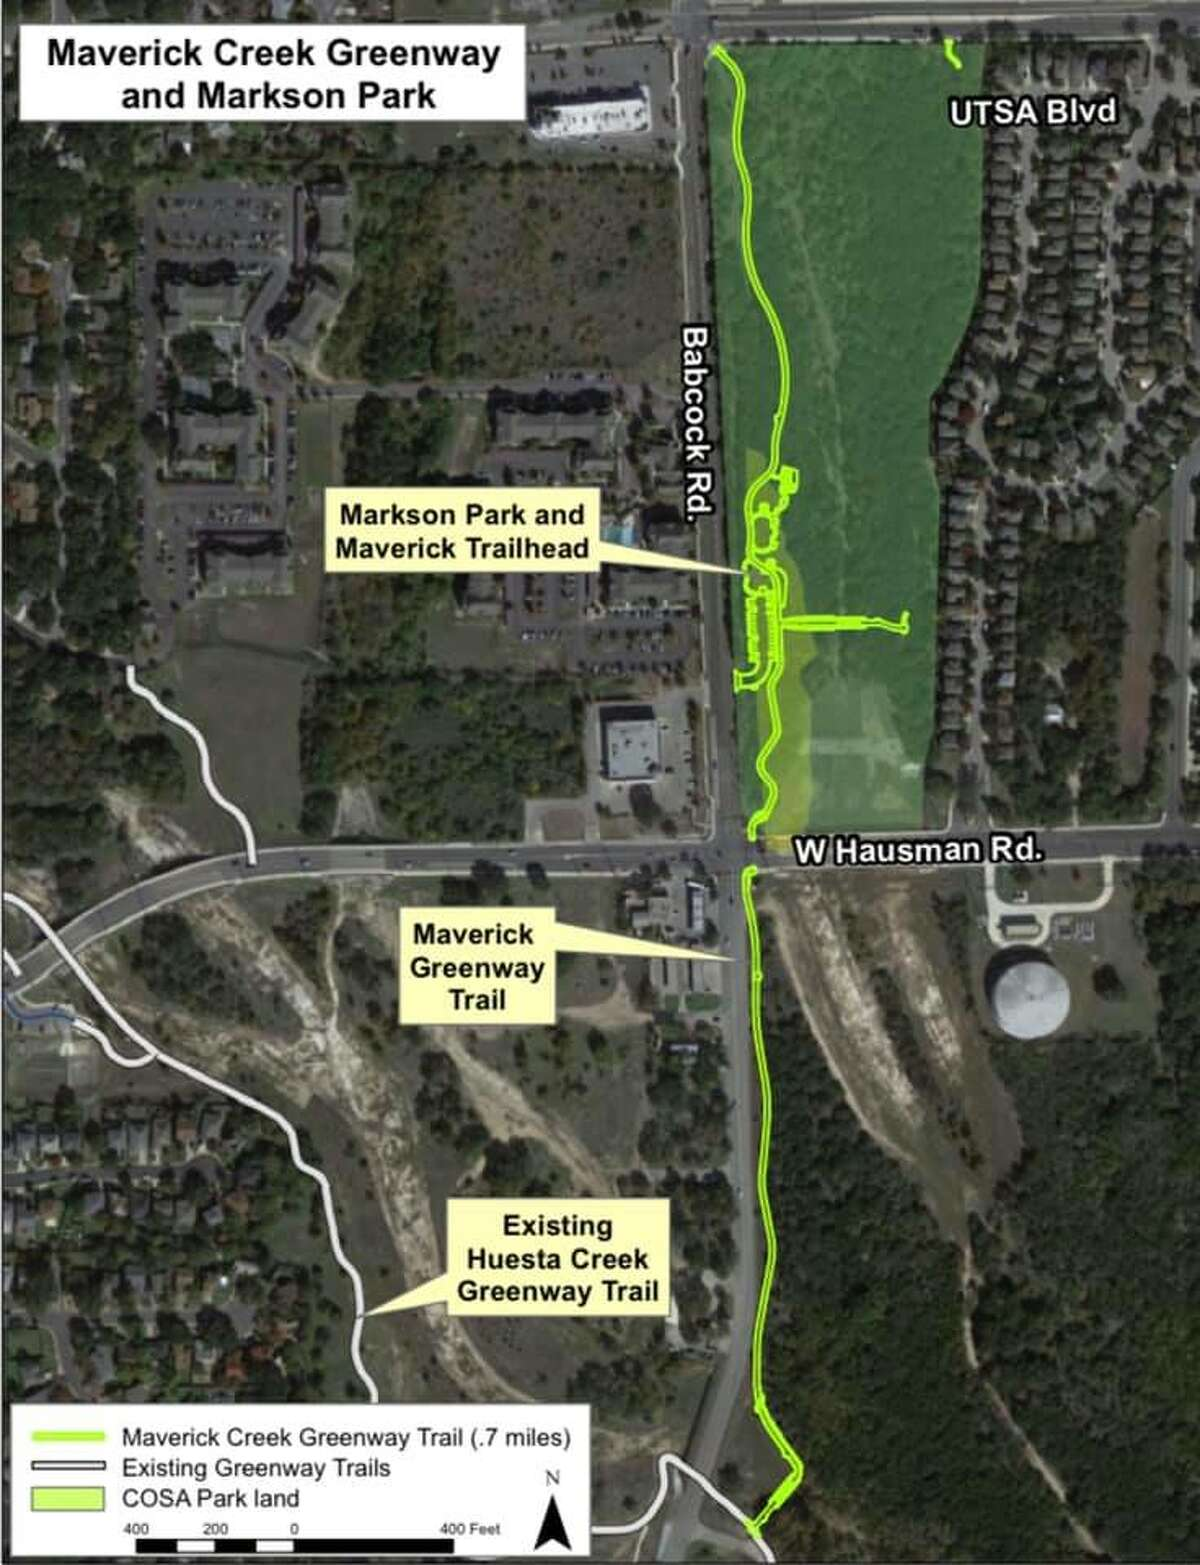 The new trail connects to the Leon Creek Greenway.